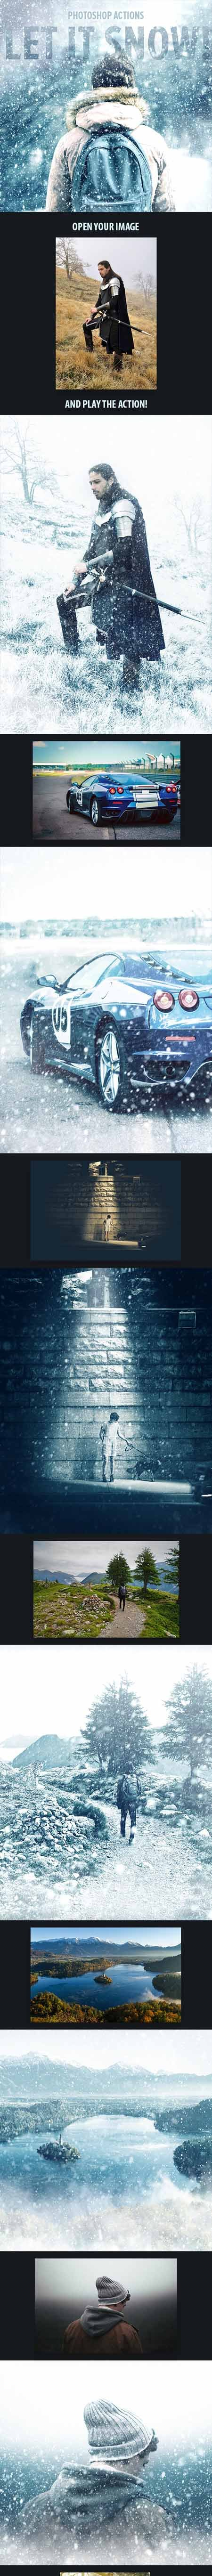 GraphicRiver - Let It Snow - Photoshop Action 18790823